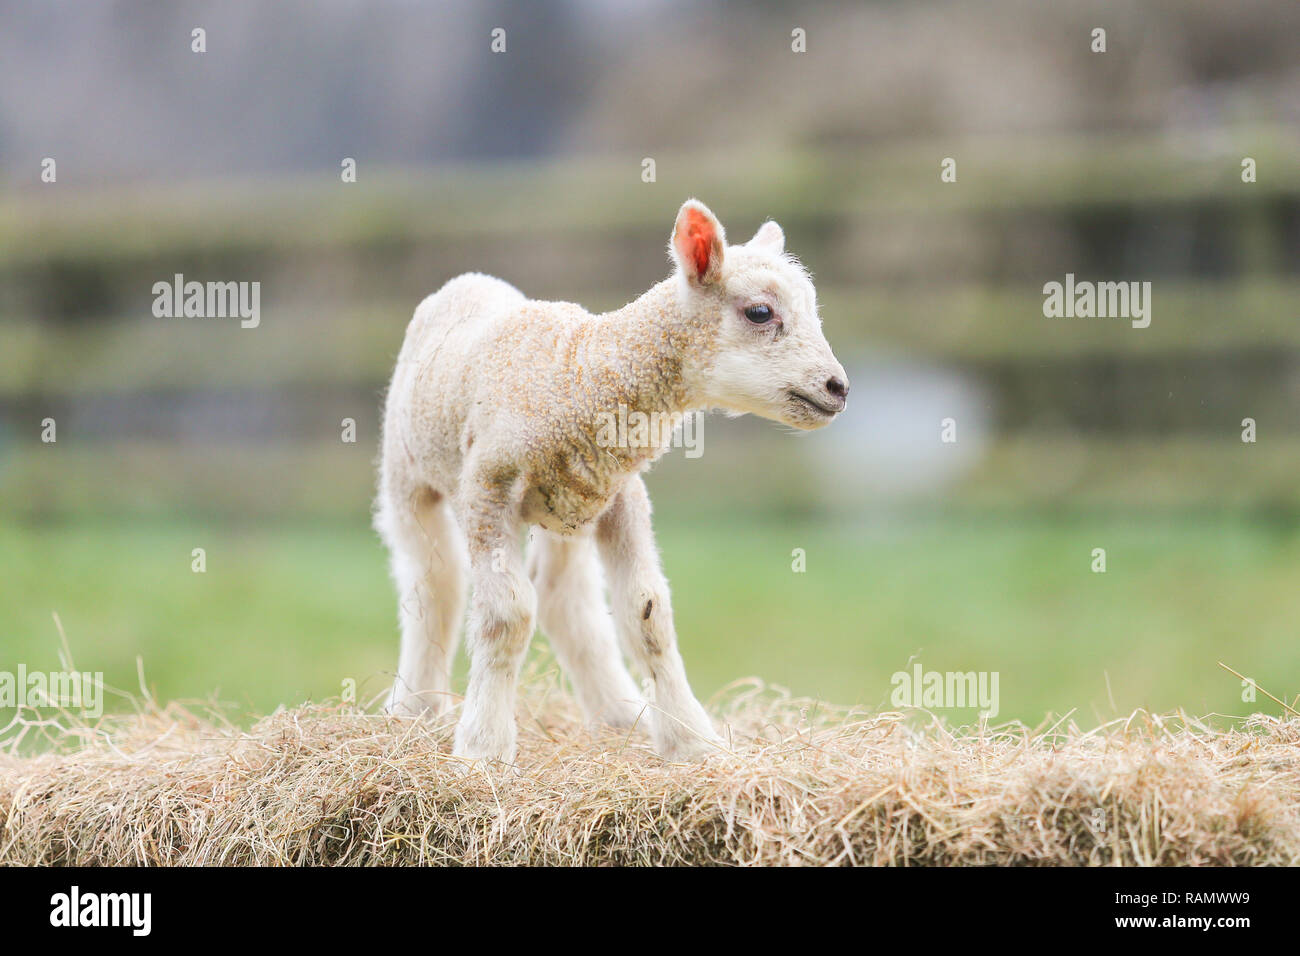 Arley, Worcestershire, UK. 4th Jan, 2019. A day-old lamb on a farm near Arley, Worcestershire. Even though it is still winter and the traditional lambing season begins in April in the UK, these early lambs are the result of purposely leaving the tup, or ram, in with his ewes, producing new year lambs. Credit: Peter Lopeman/Alamy Live News Stock Photo